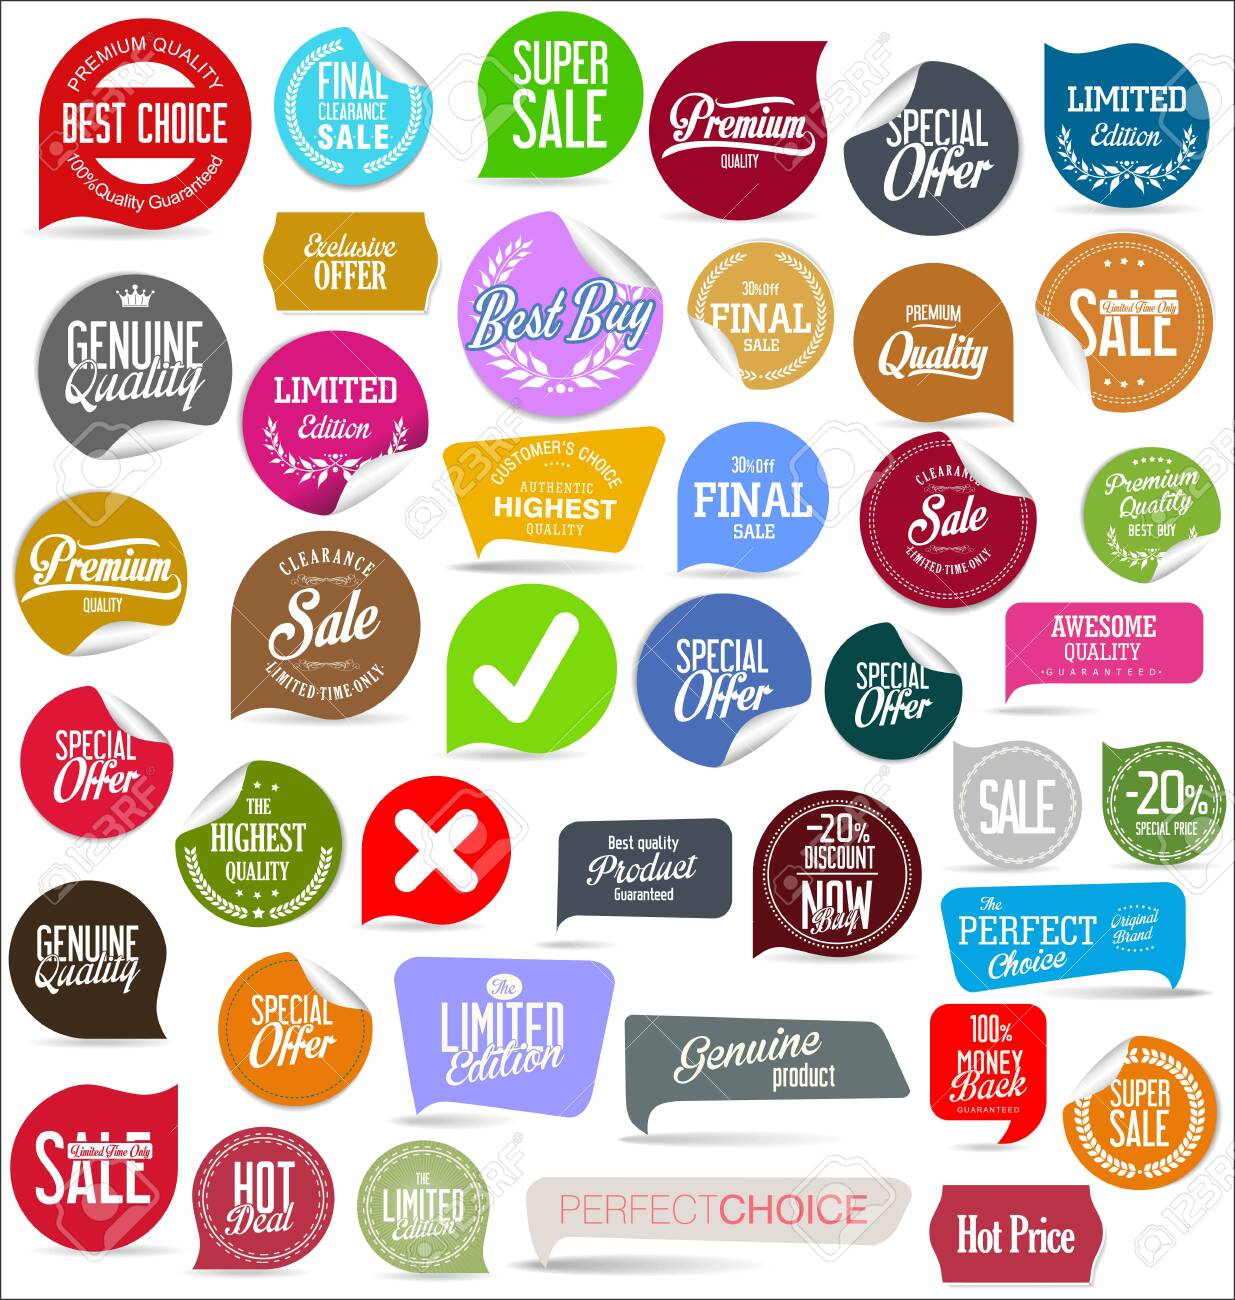 Sale banner templates design and special offer tags collection - 138592861